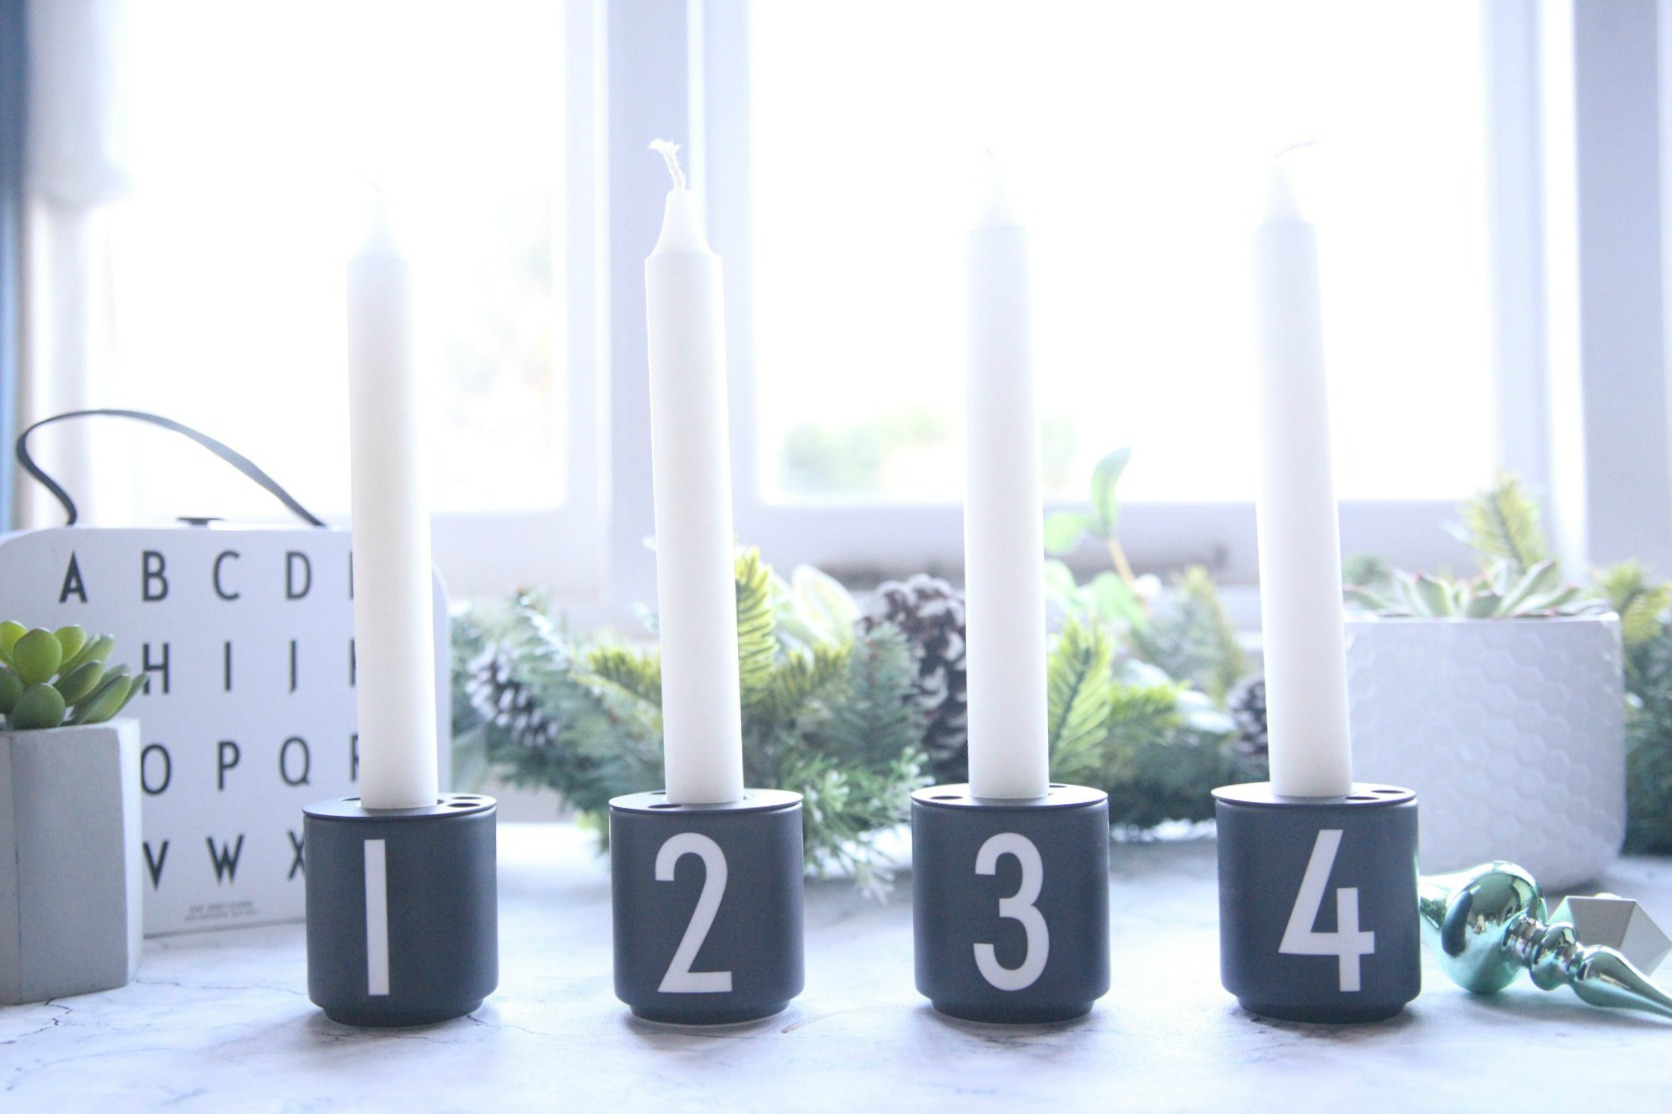 Espresso cups that transform into candle holders for Christmas from Design Letters